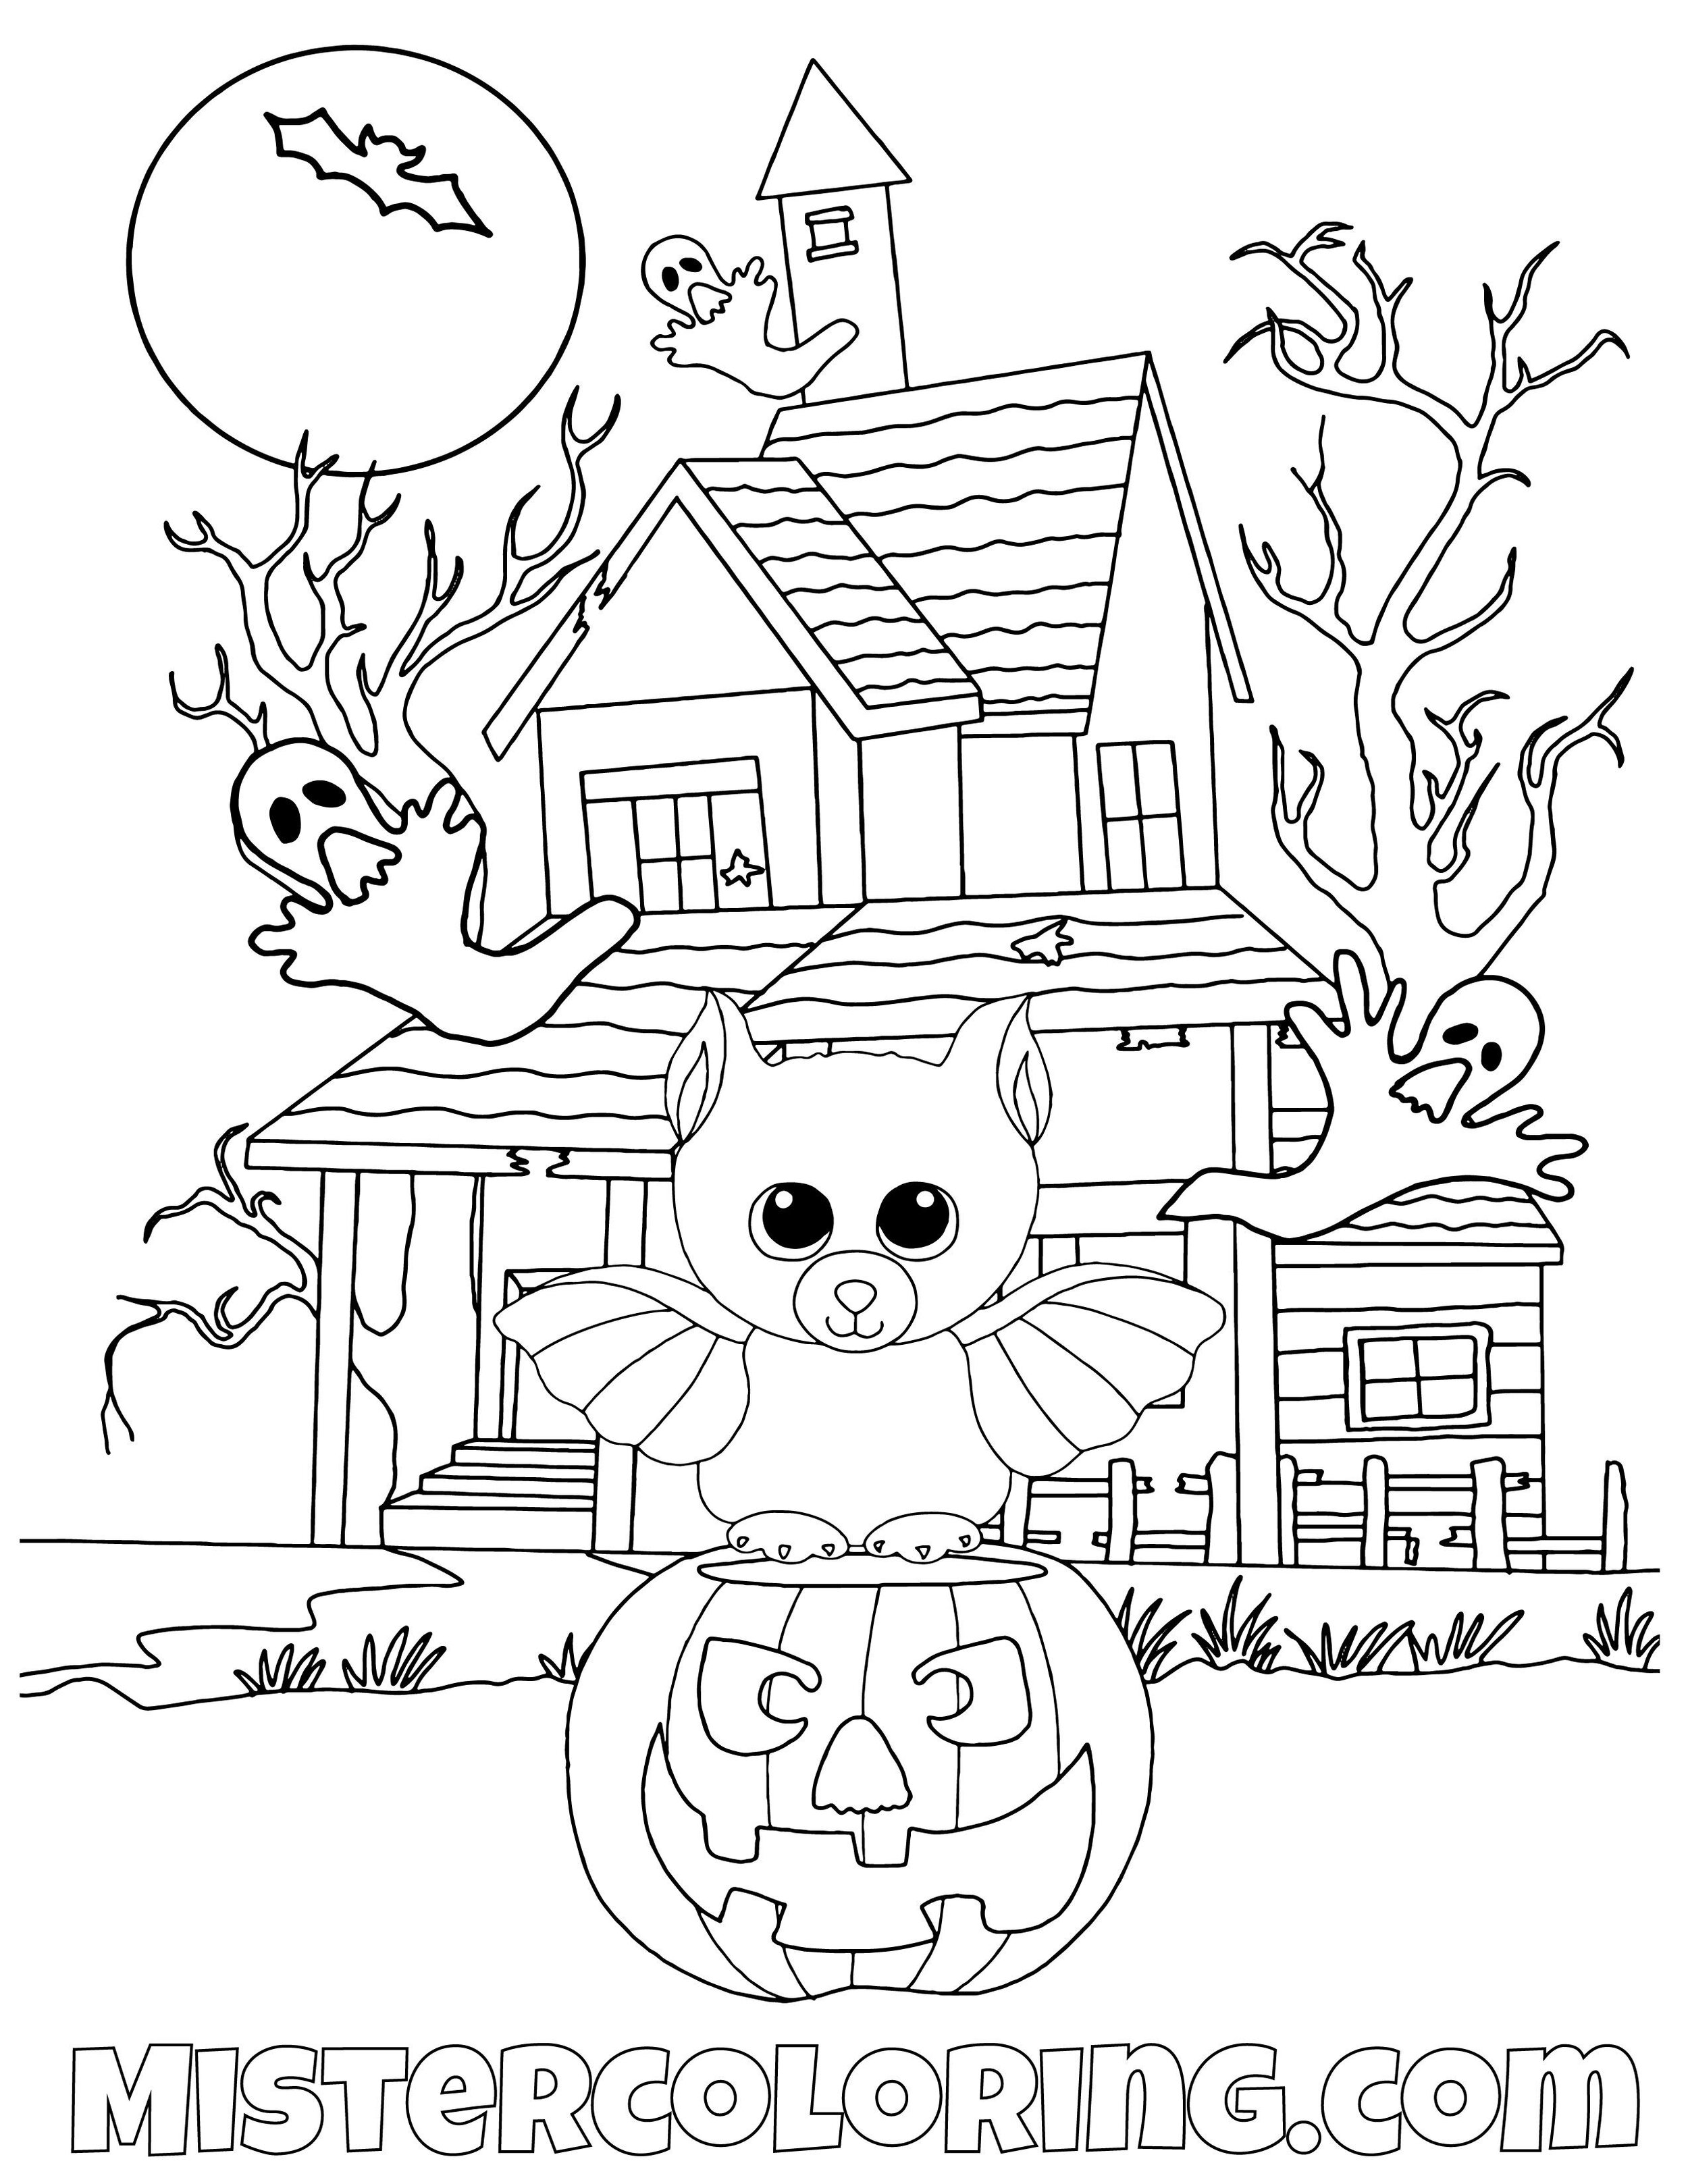 Halloween coloring book pages: Halloween coloring pages, trick-or ... | 1294x1000